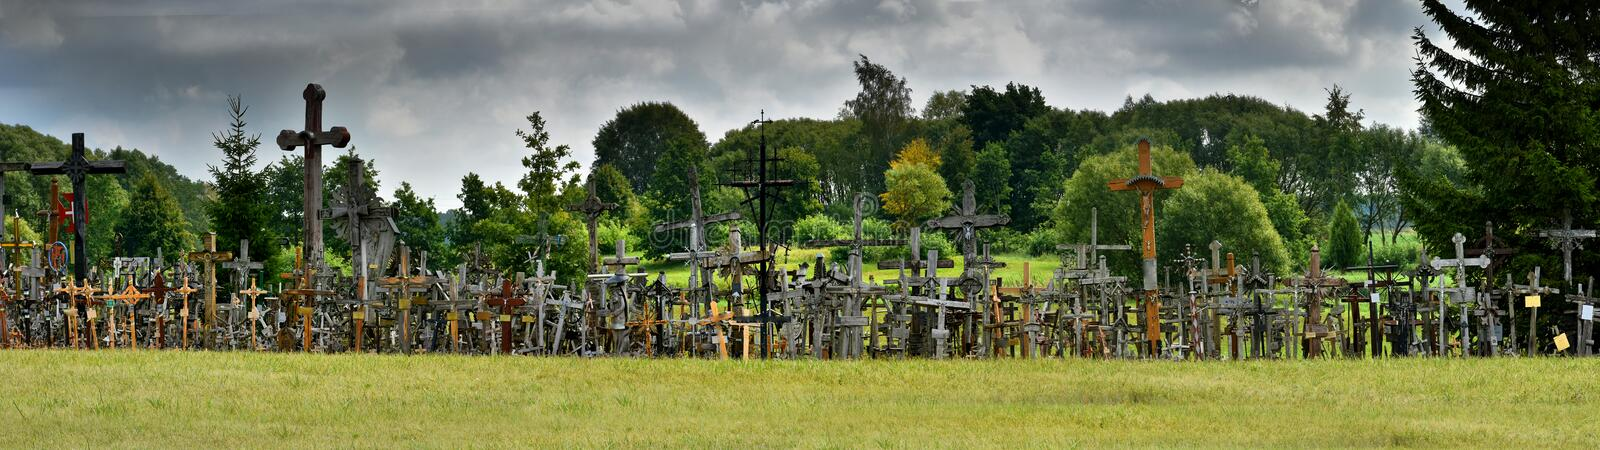 Hill of crosses in Siauliai, Lithuania royalty free stock photo